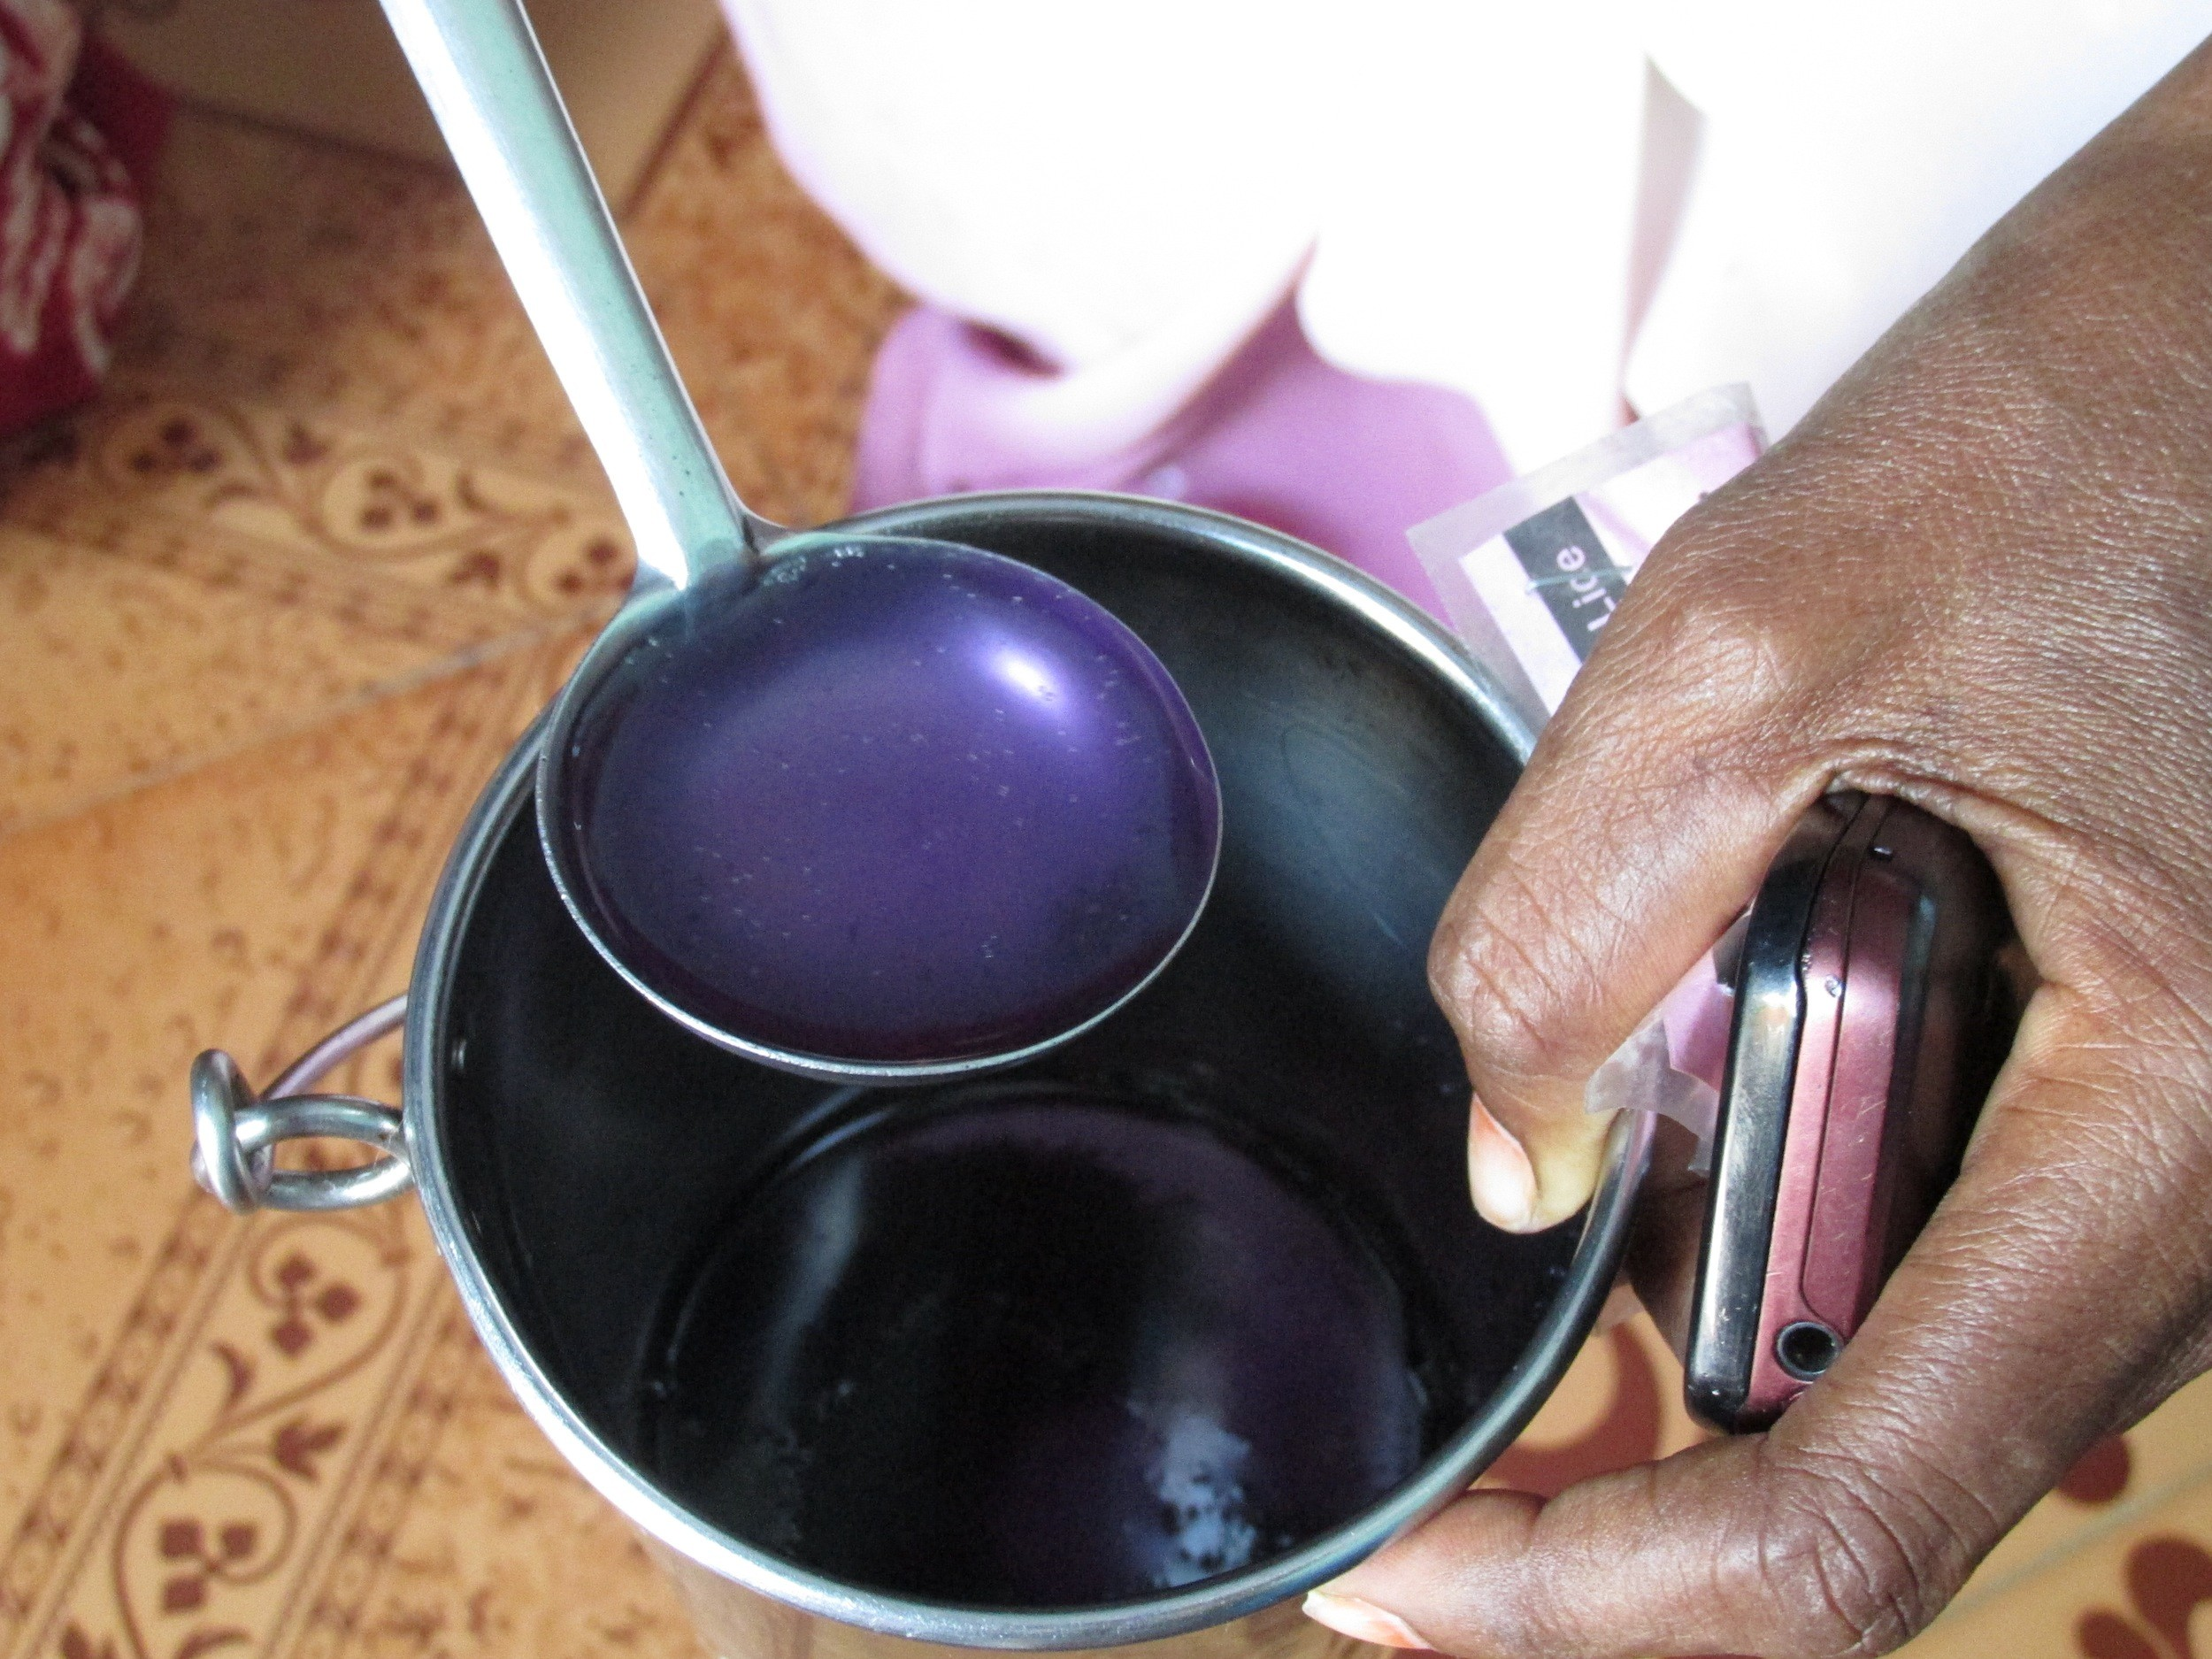 Pandiammal makes this deep purple all natural lice medicine for her village